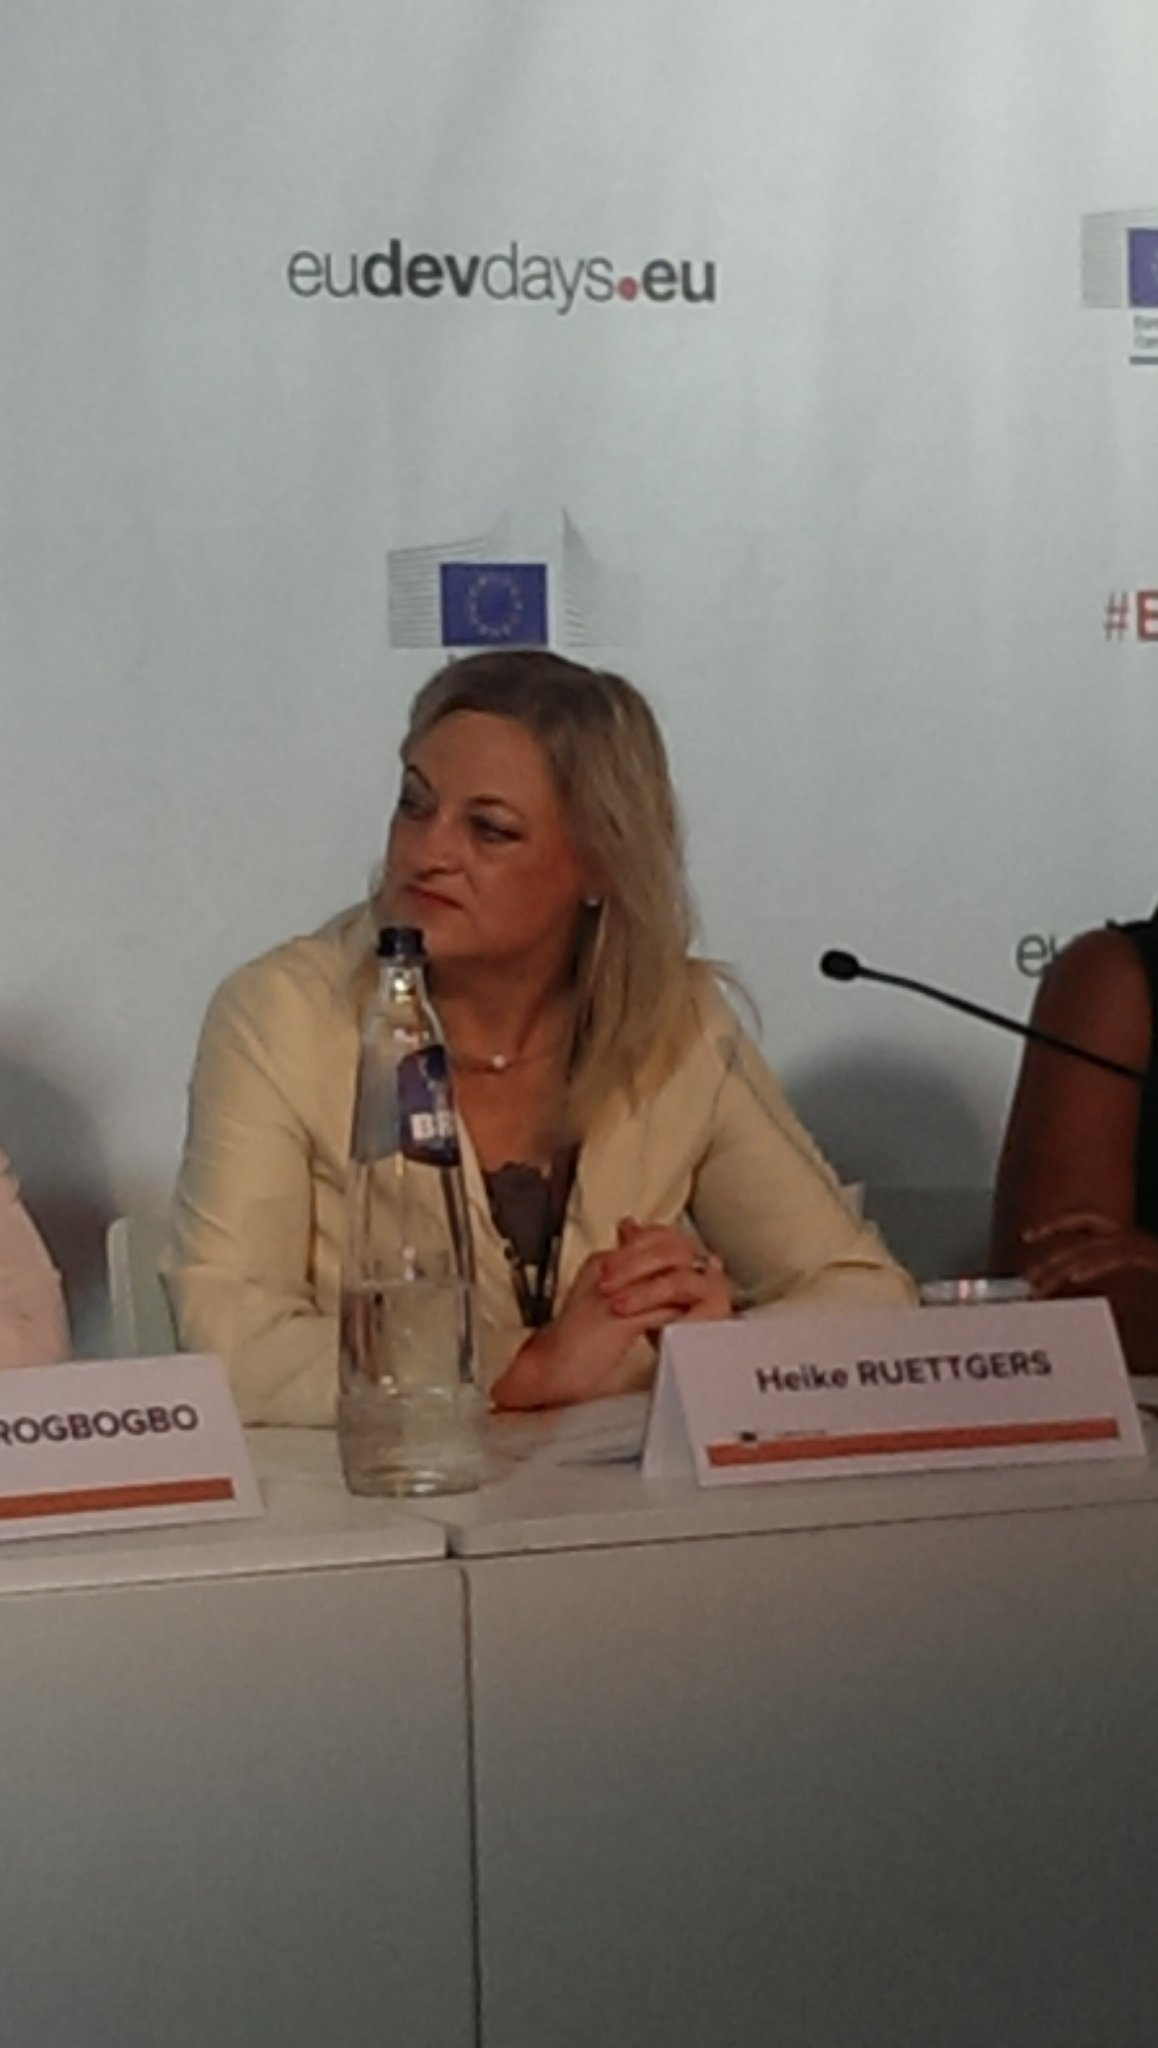 A strong call for #partnerships by @ruettgers_h to bring together & scaleup successful interventions supporting #Women in business at #EDD17 https://t.co/JDK3xOJW0m